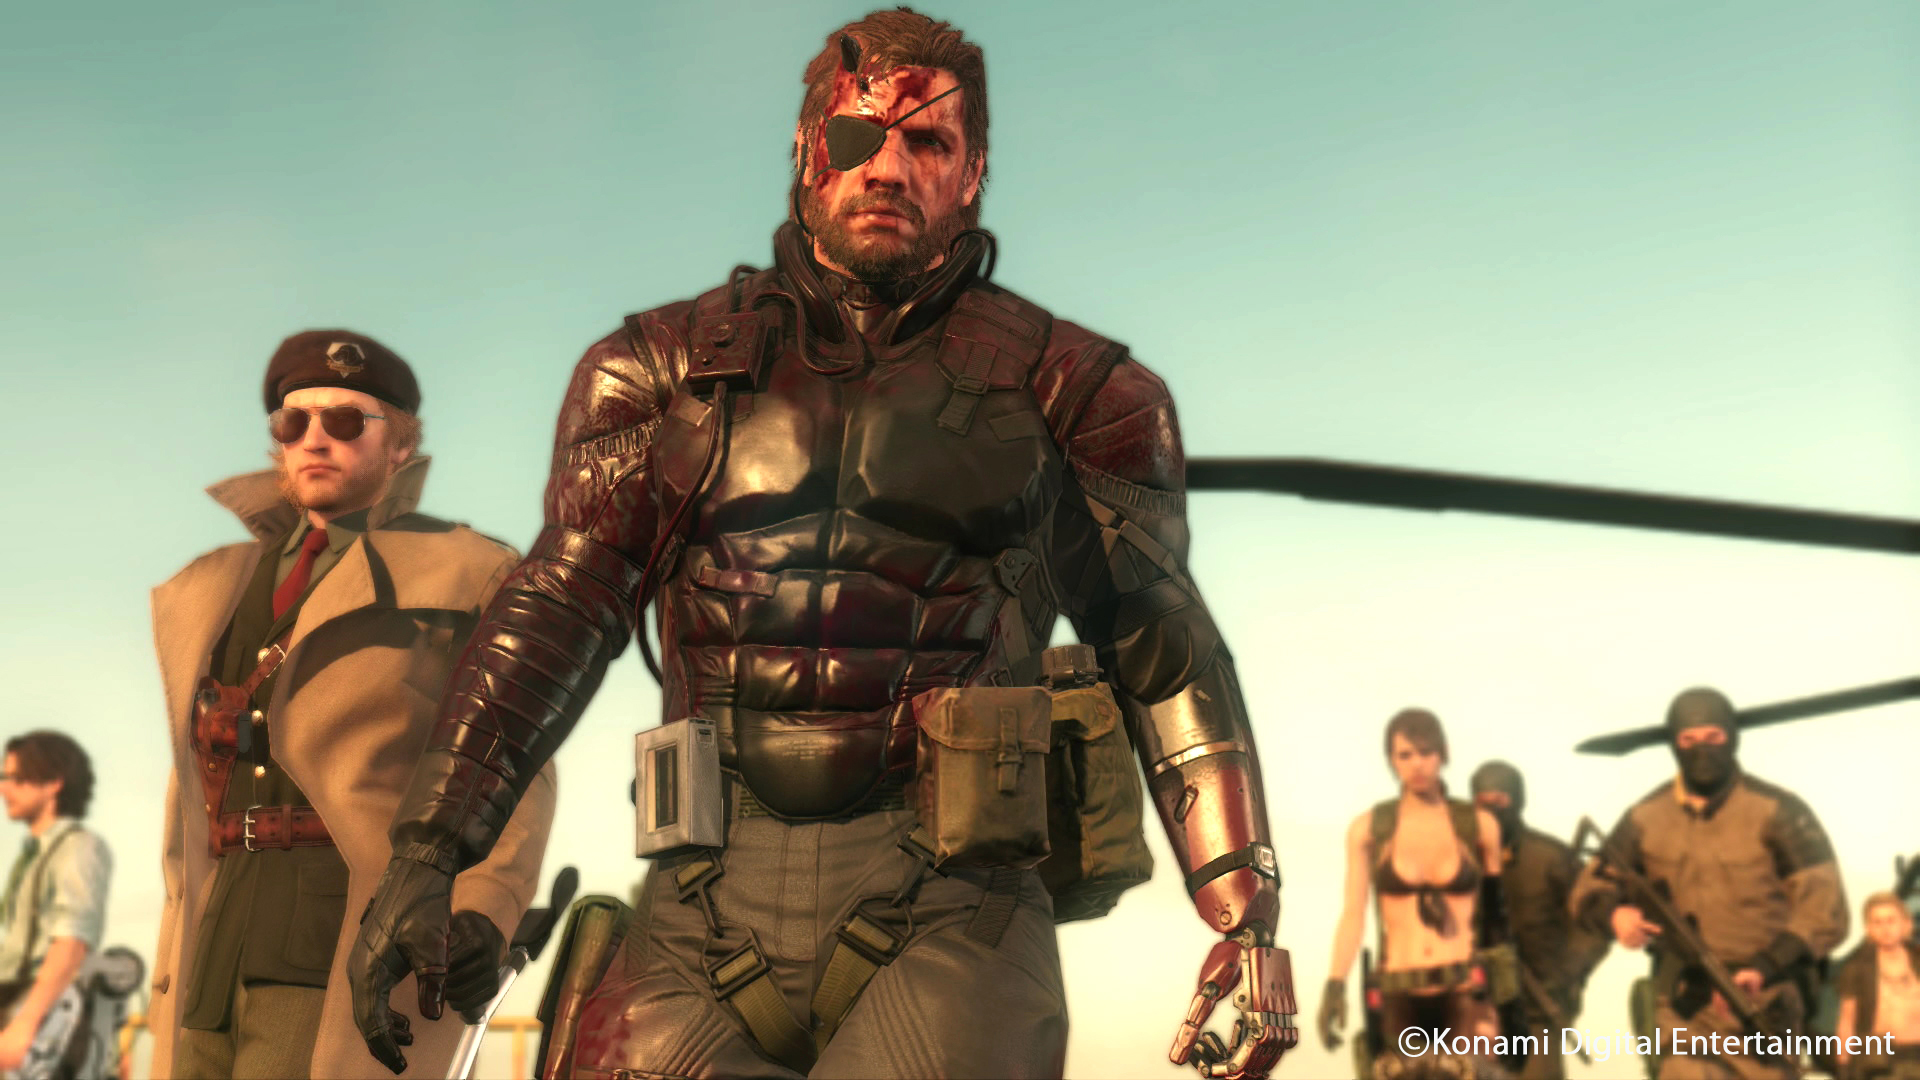 Metal Gear Solid V 5 Definitive Experience CD key + Crack Latest Version PC Game For Free Download